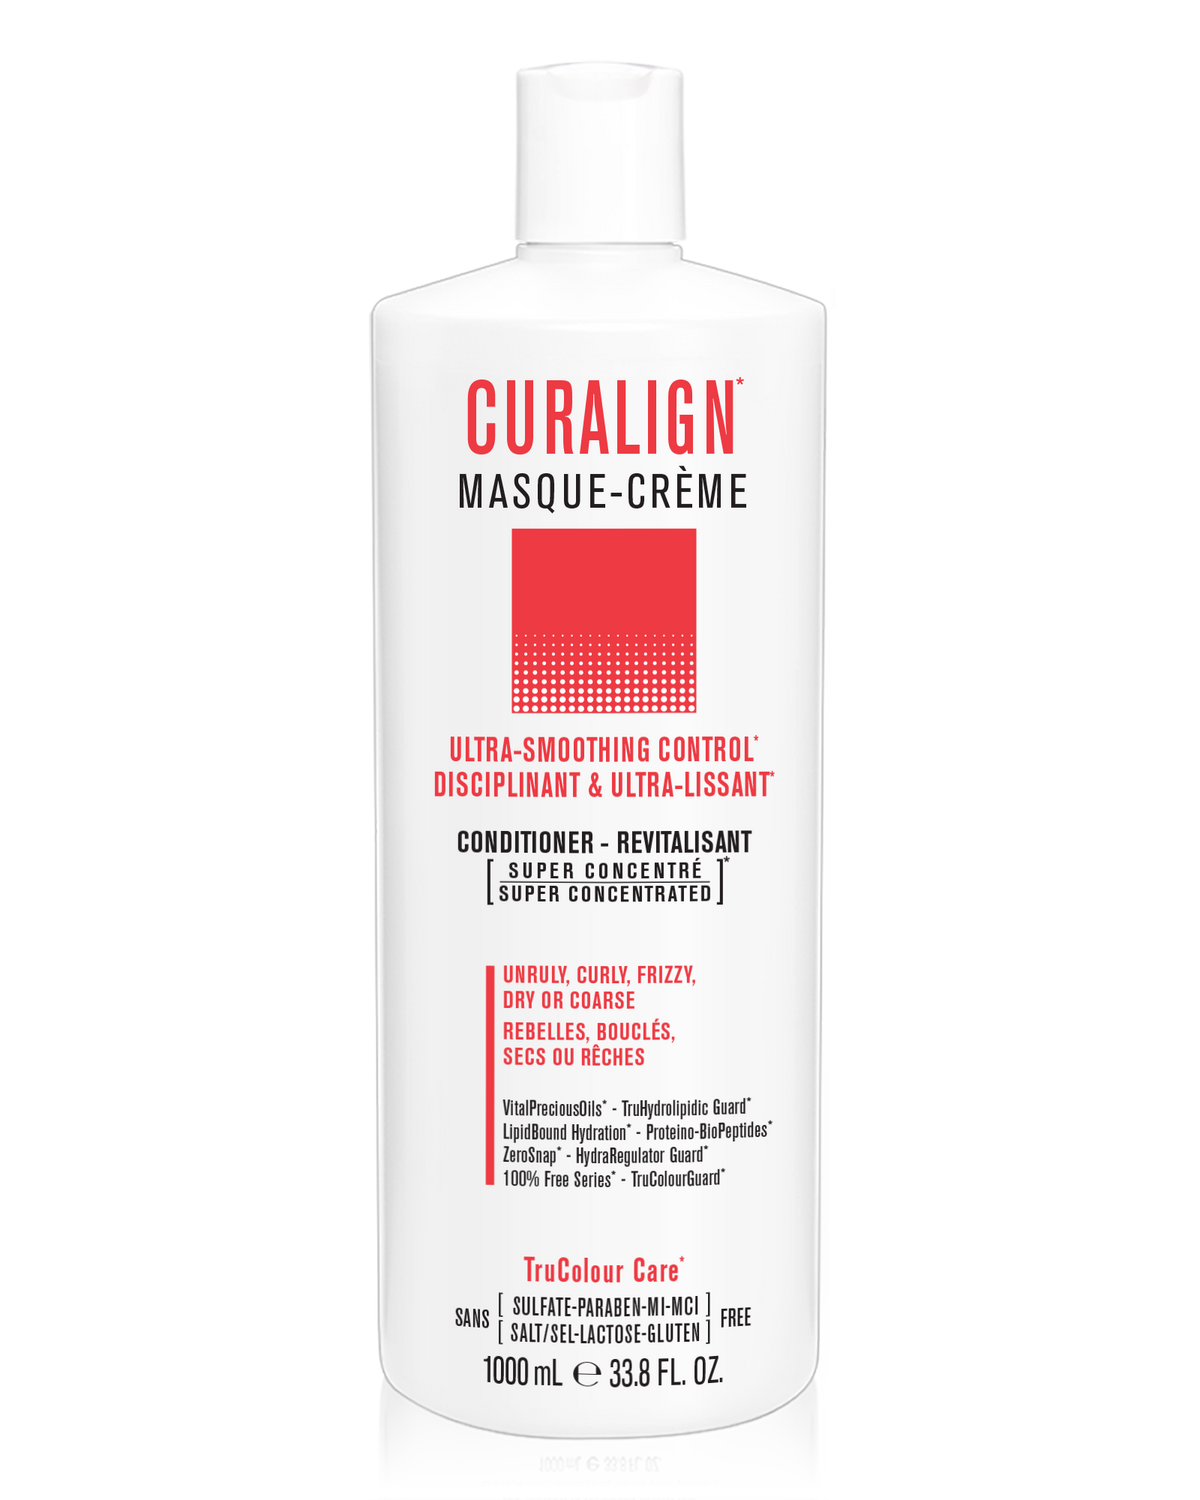 CURALIGN Ultra-Smoothing Control Masque-Creme (conditioner) - SNOBGIRLS.com